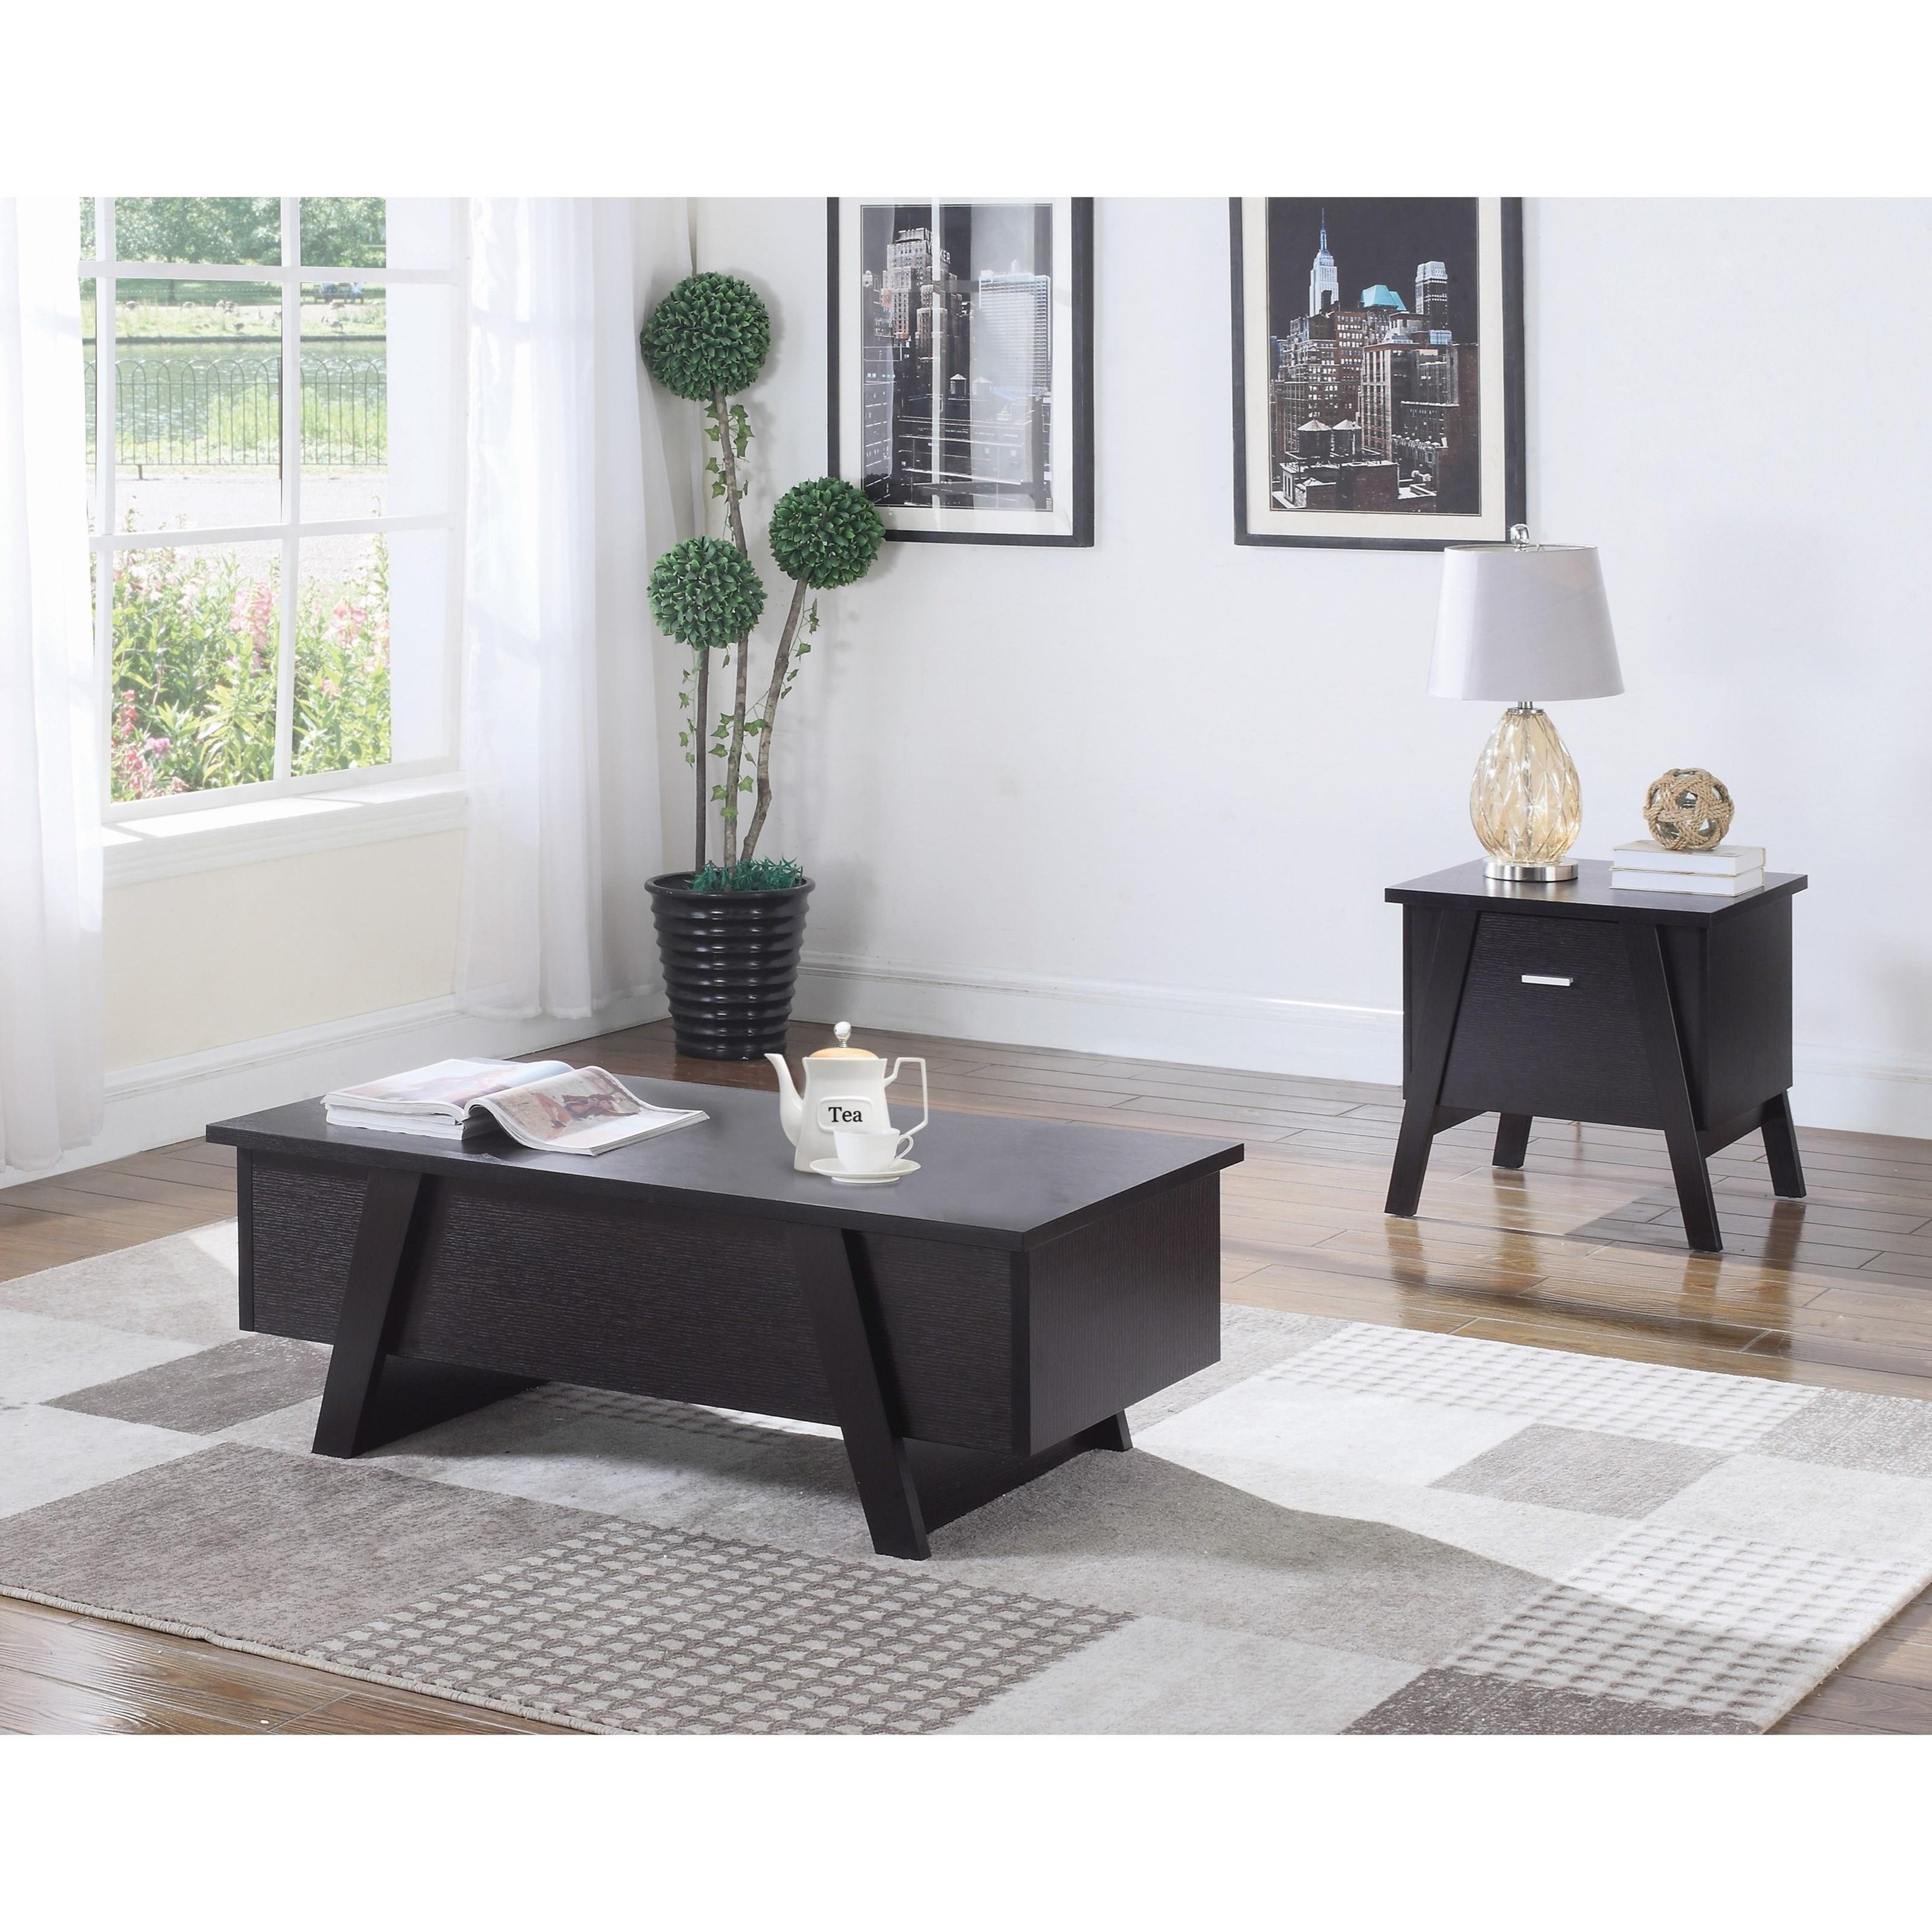 coaster fine furniture cappuccino rectangular console and sofa table long knight recliner 72113 721138 lift top coffee